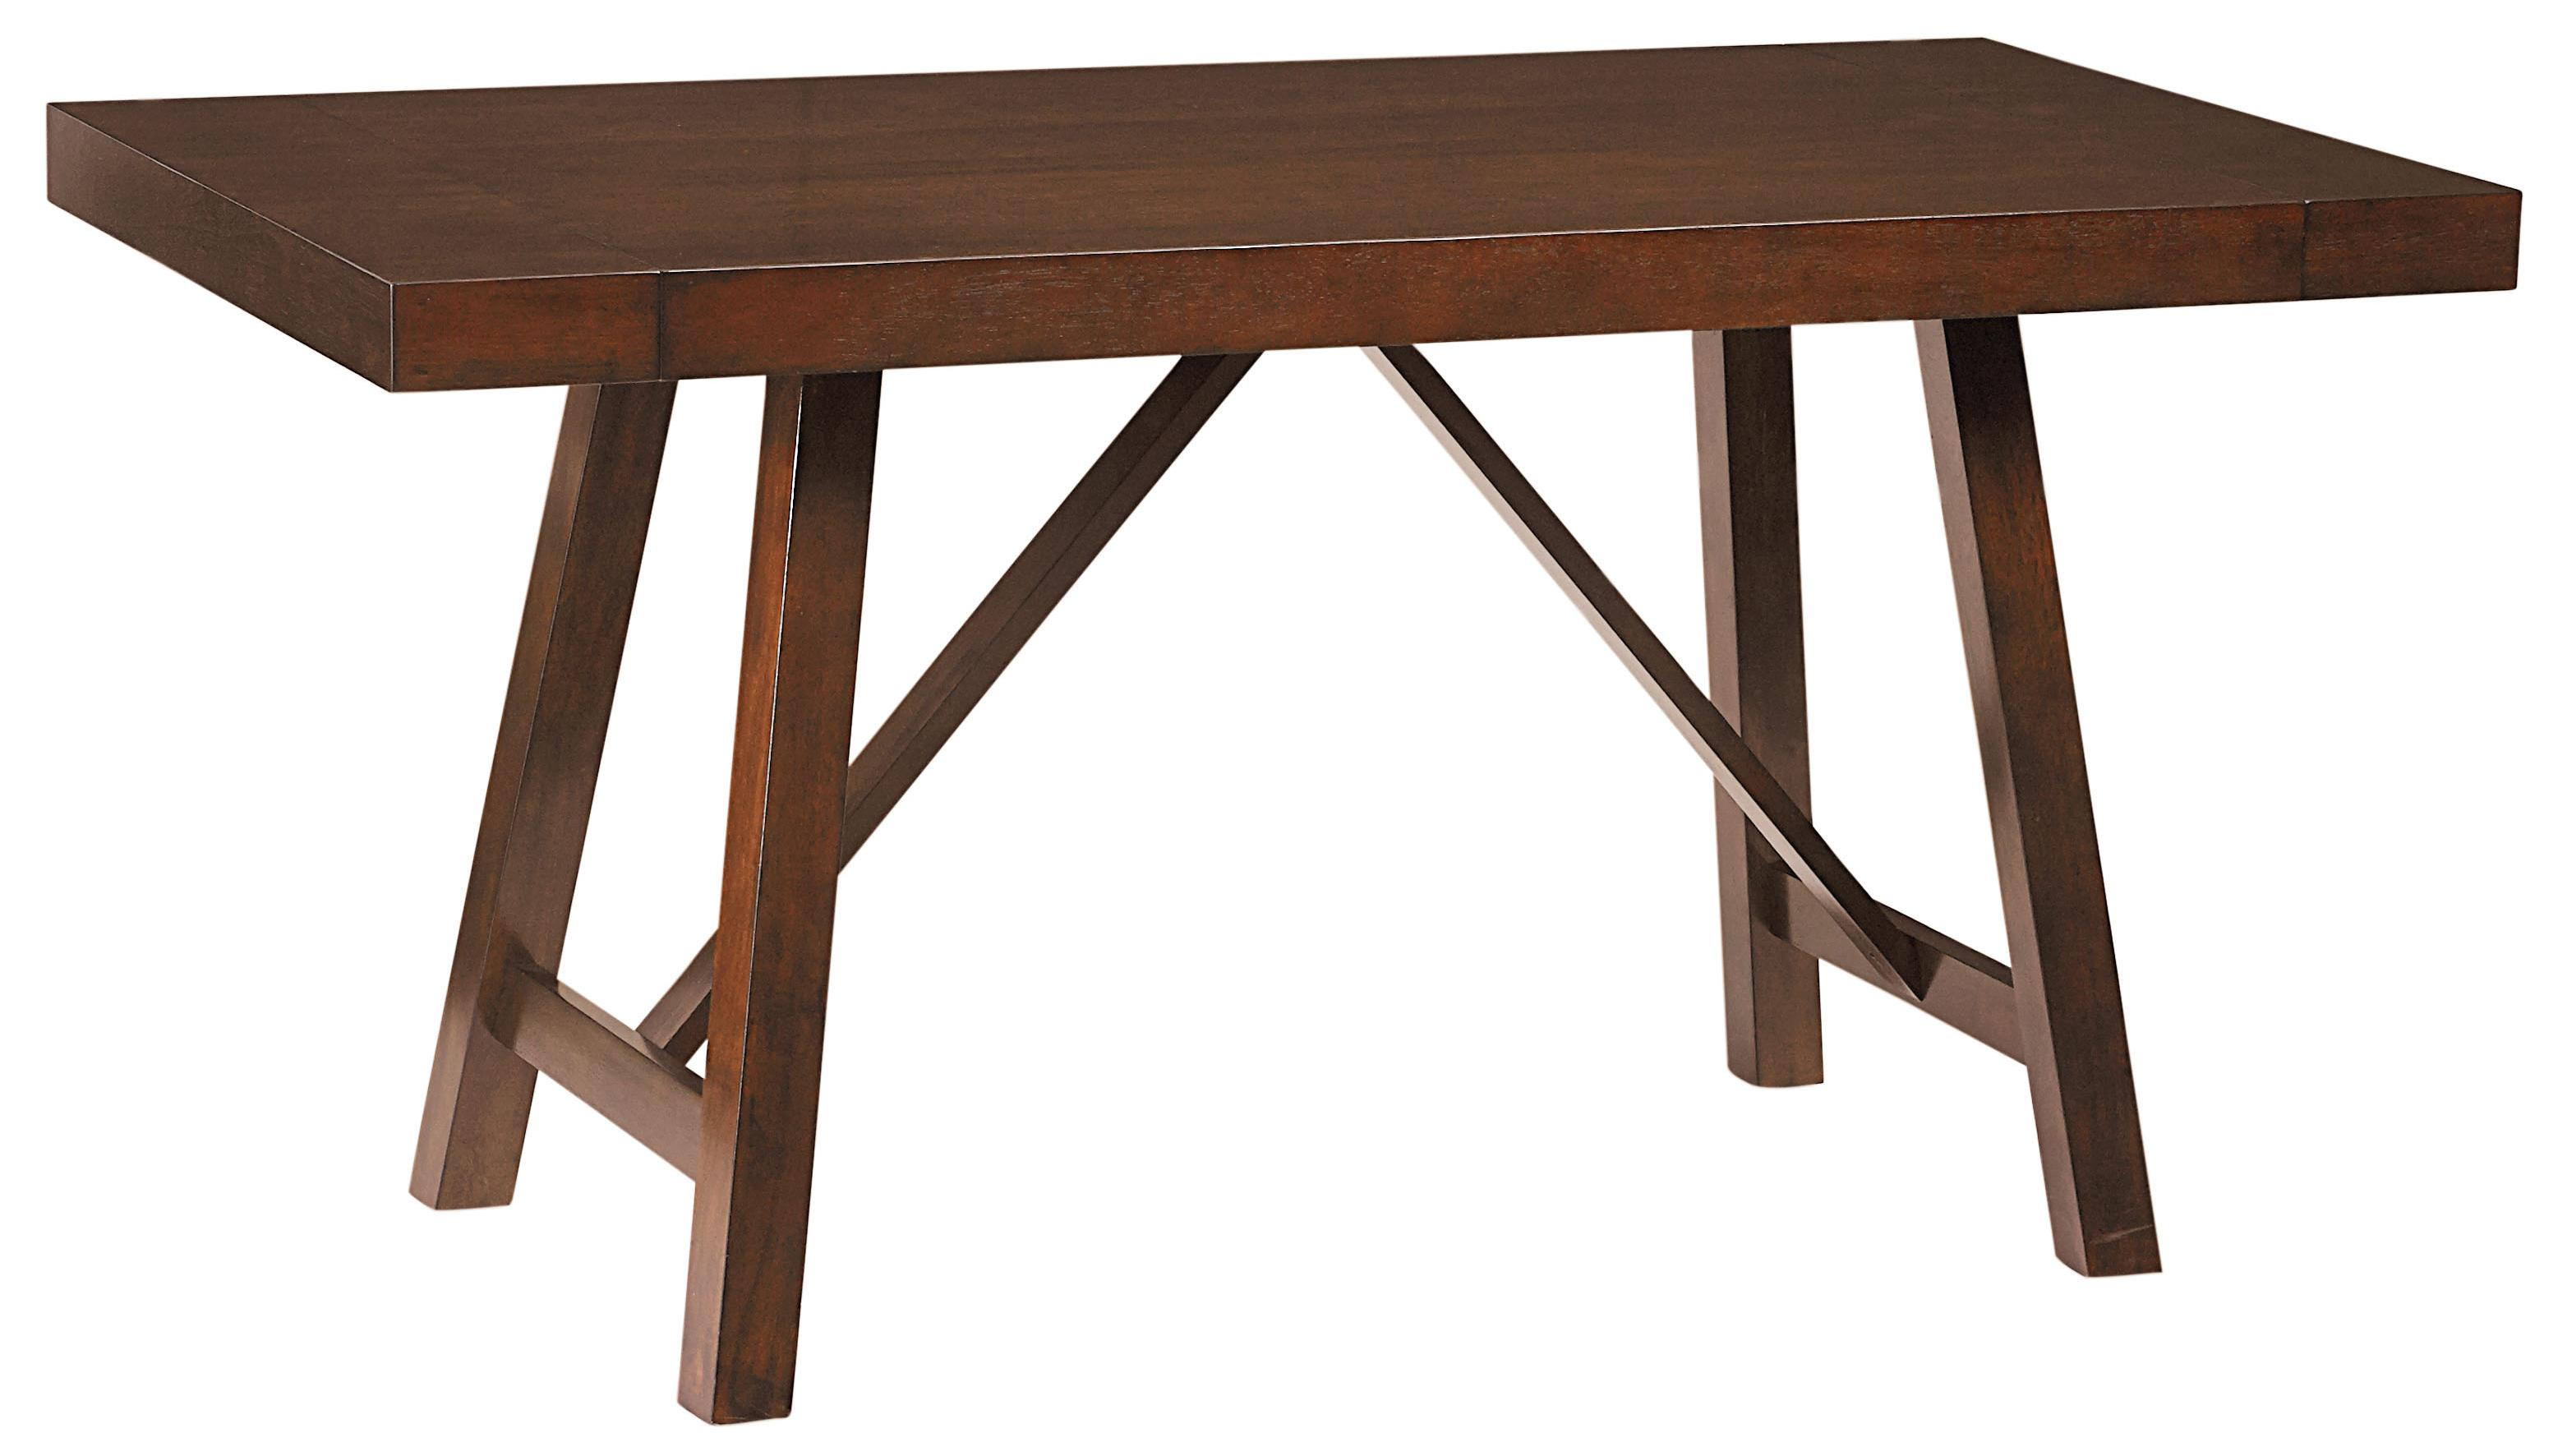 Standard Furniture Omaha Brown Counter Height Table - Item Number: 16196